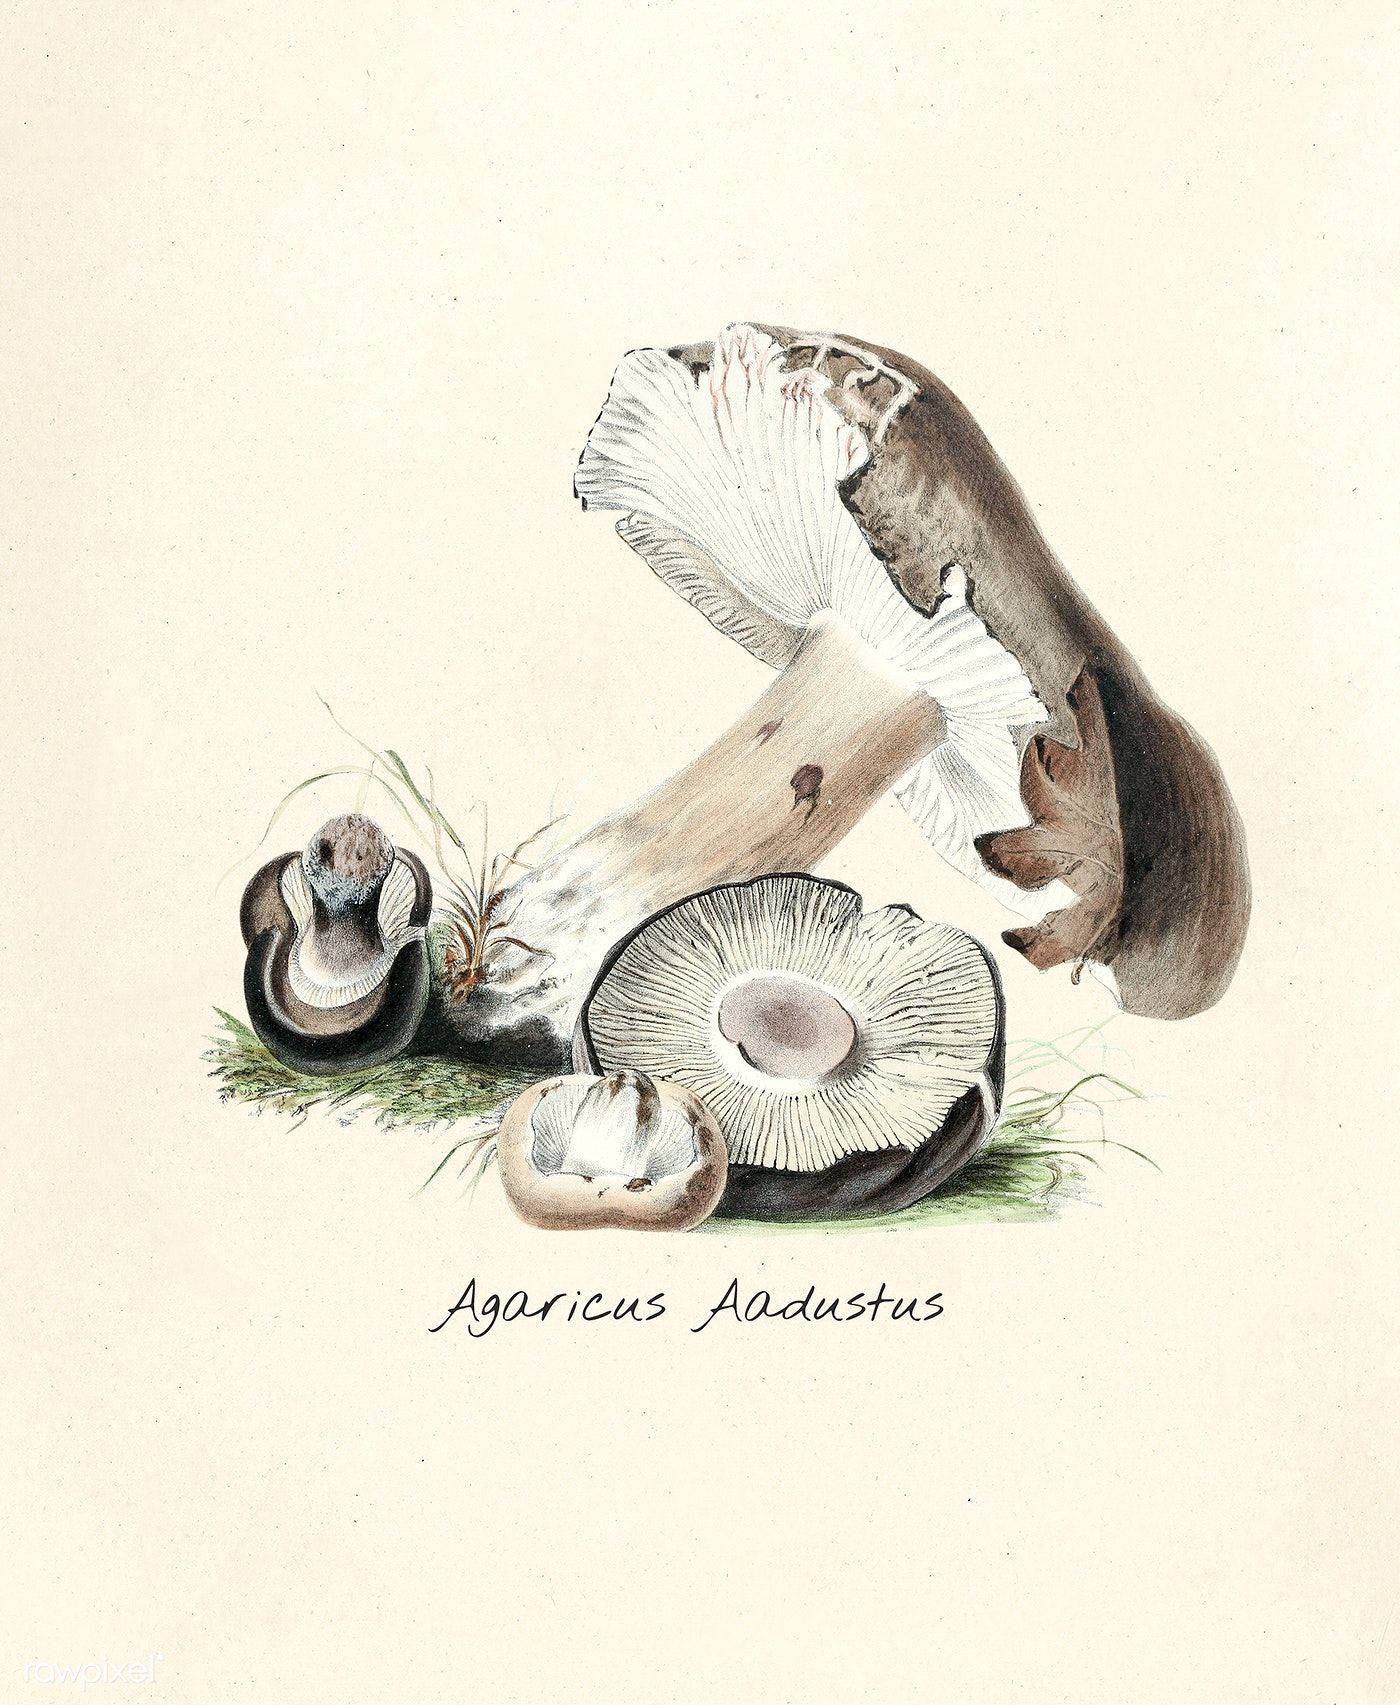 Antique illustration of Agaricus Aadustus | free image by ...